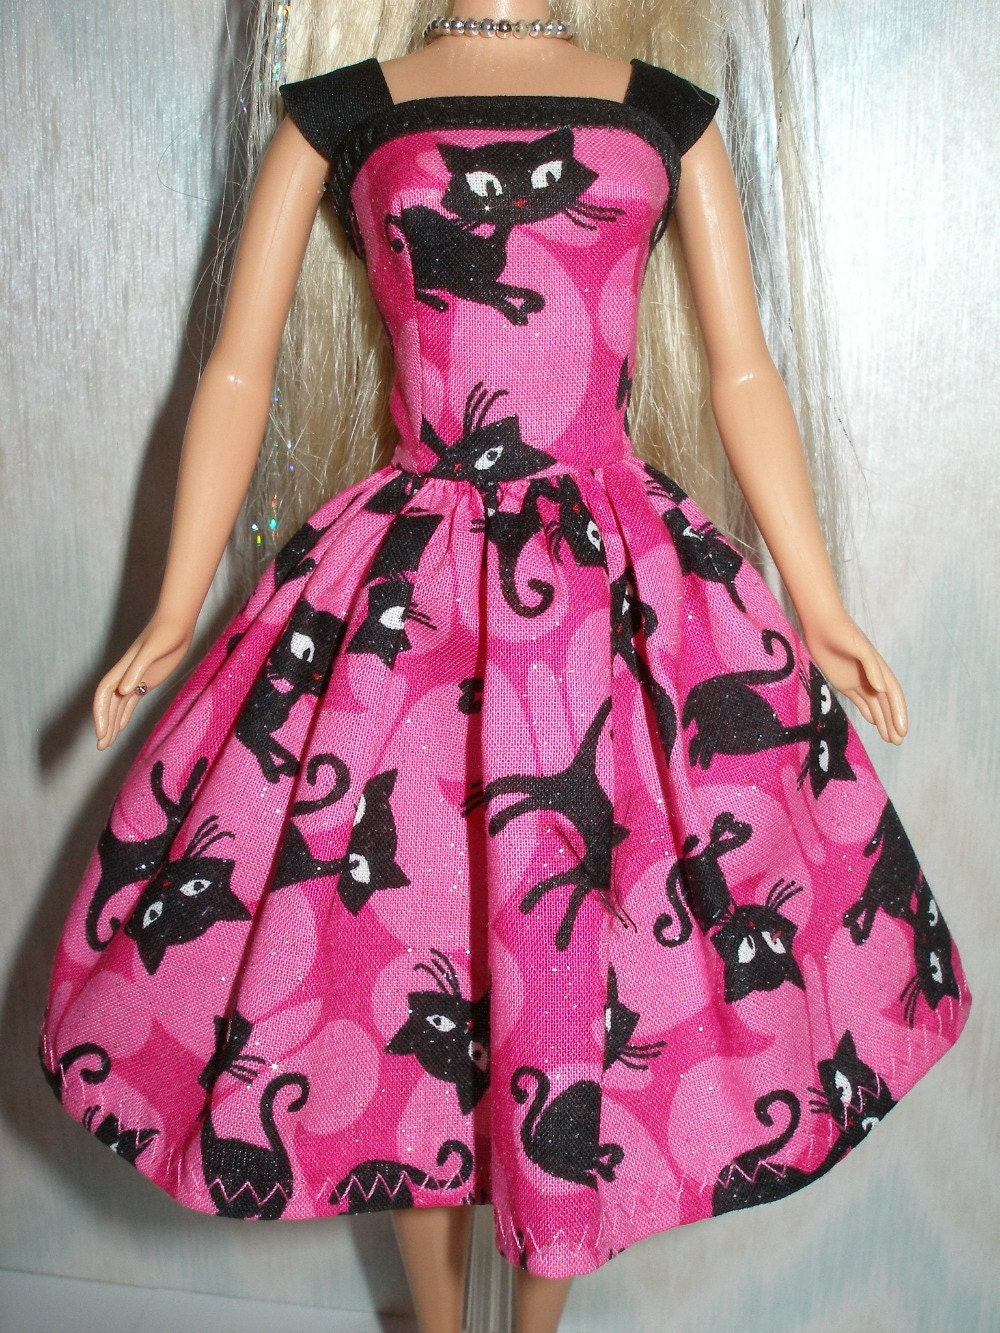 handmade clothes patterns handmade 11 5 fashion doll clothes pink and black cat 290